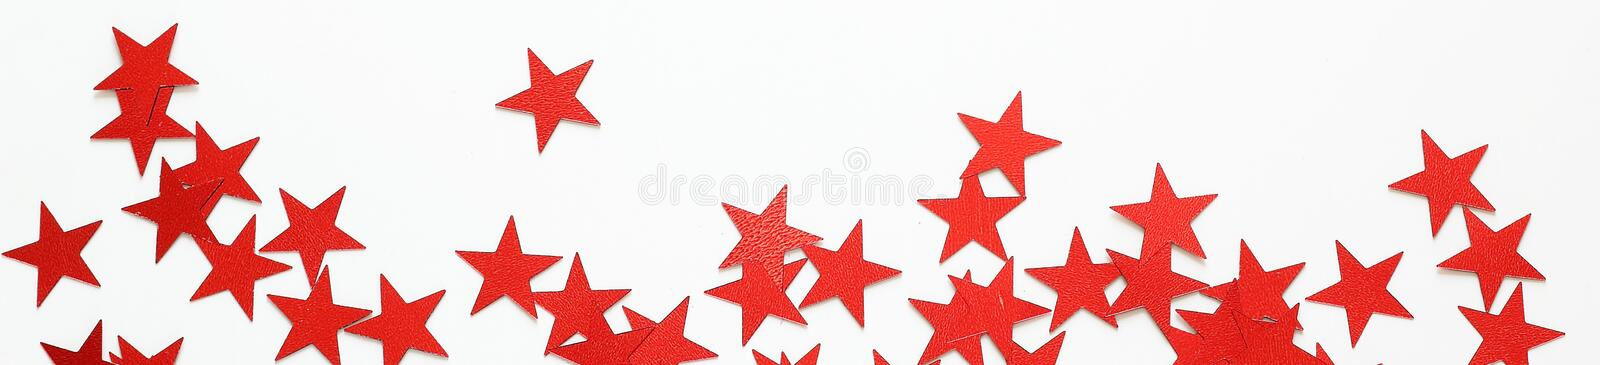 Banner of Red stars confetti stock image